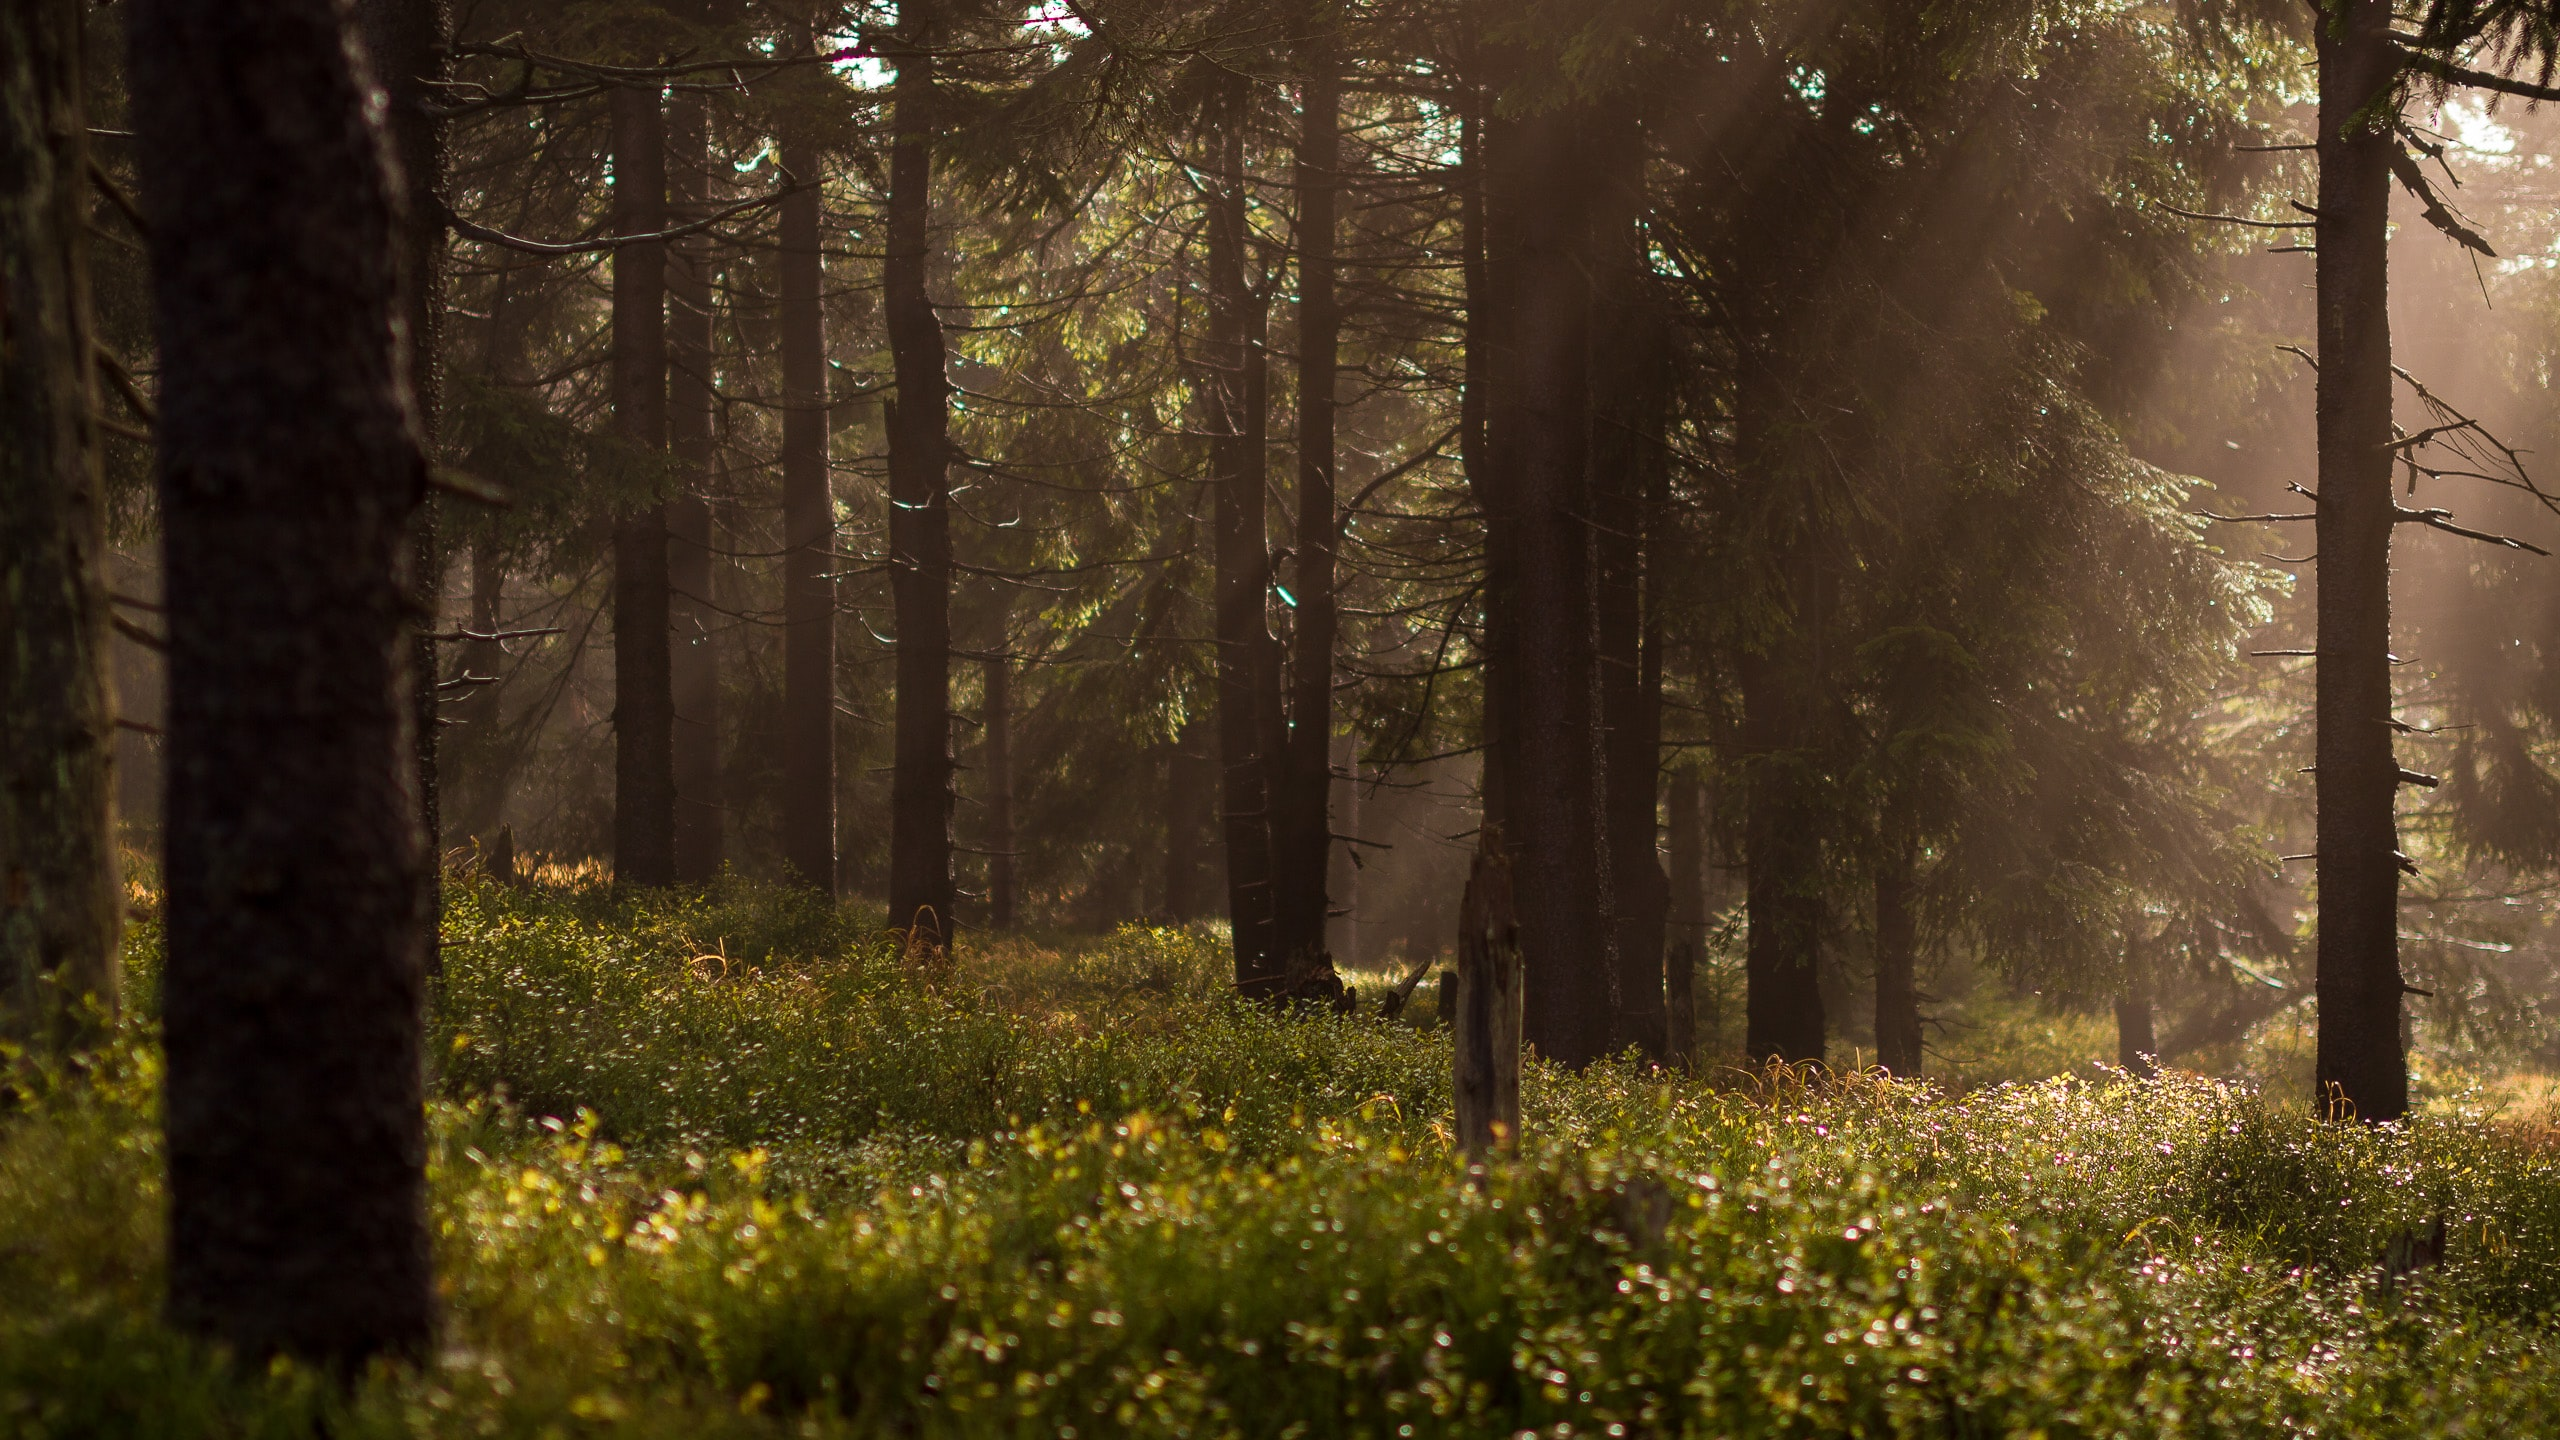 Grass and trees in a forest with rays of sunlight peeking through